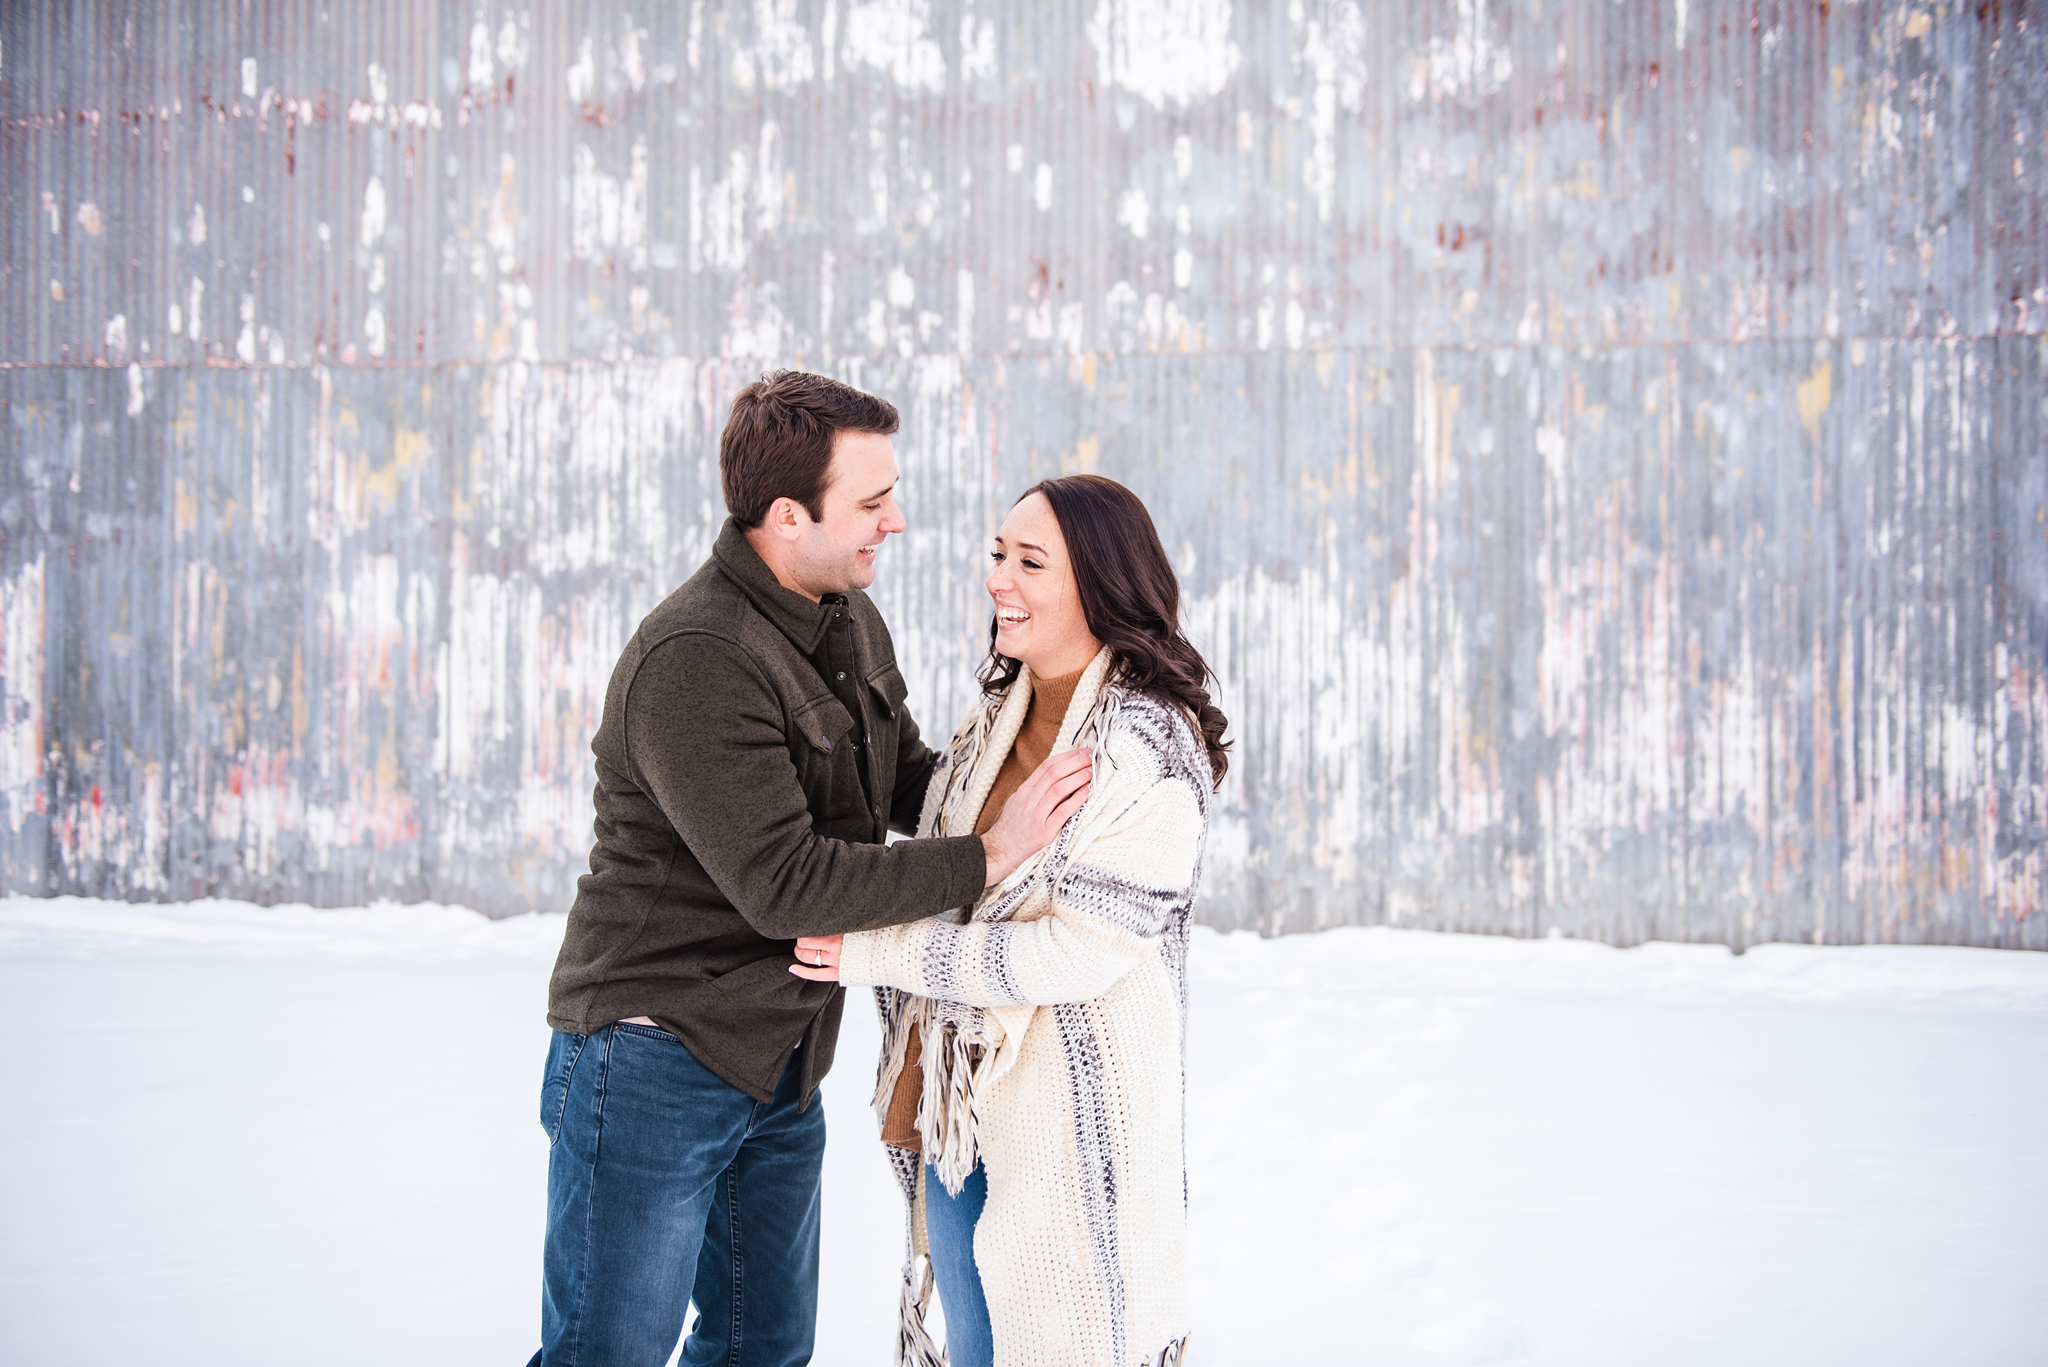 Fallbrook_Central_NY_Engagement_Session_JILL_STUDIO_Rochester_NY_Photographer_DSC_4764.jpg